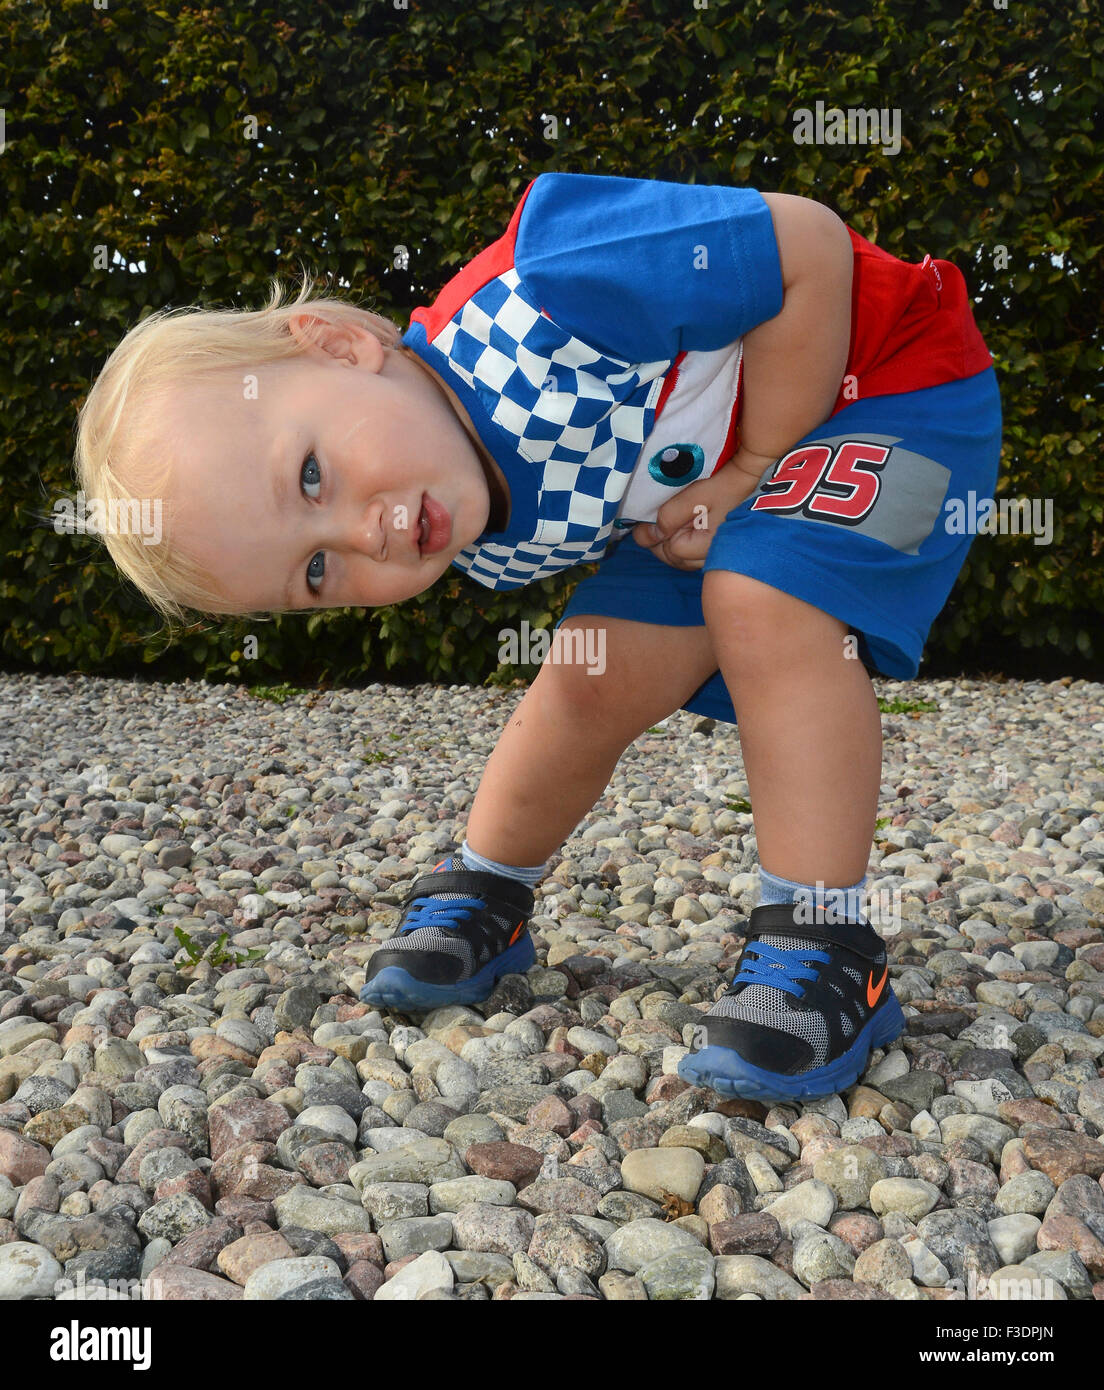 Little blond boy in colorful outfit, two and one-half years old, crouching and discovering his surroundings, Ystad, - Stock Image